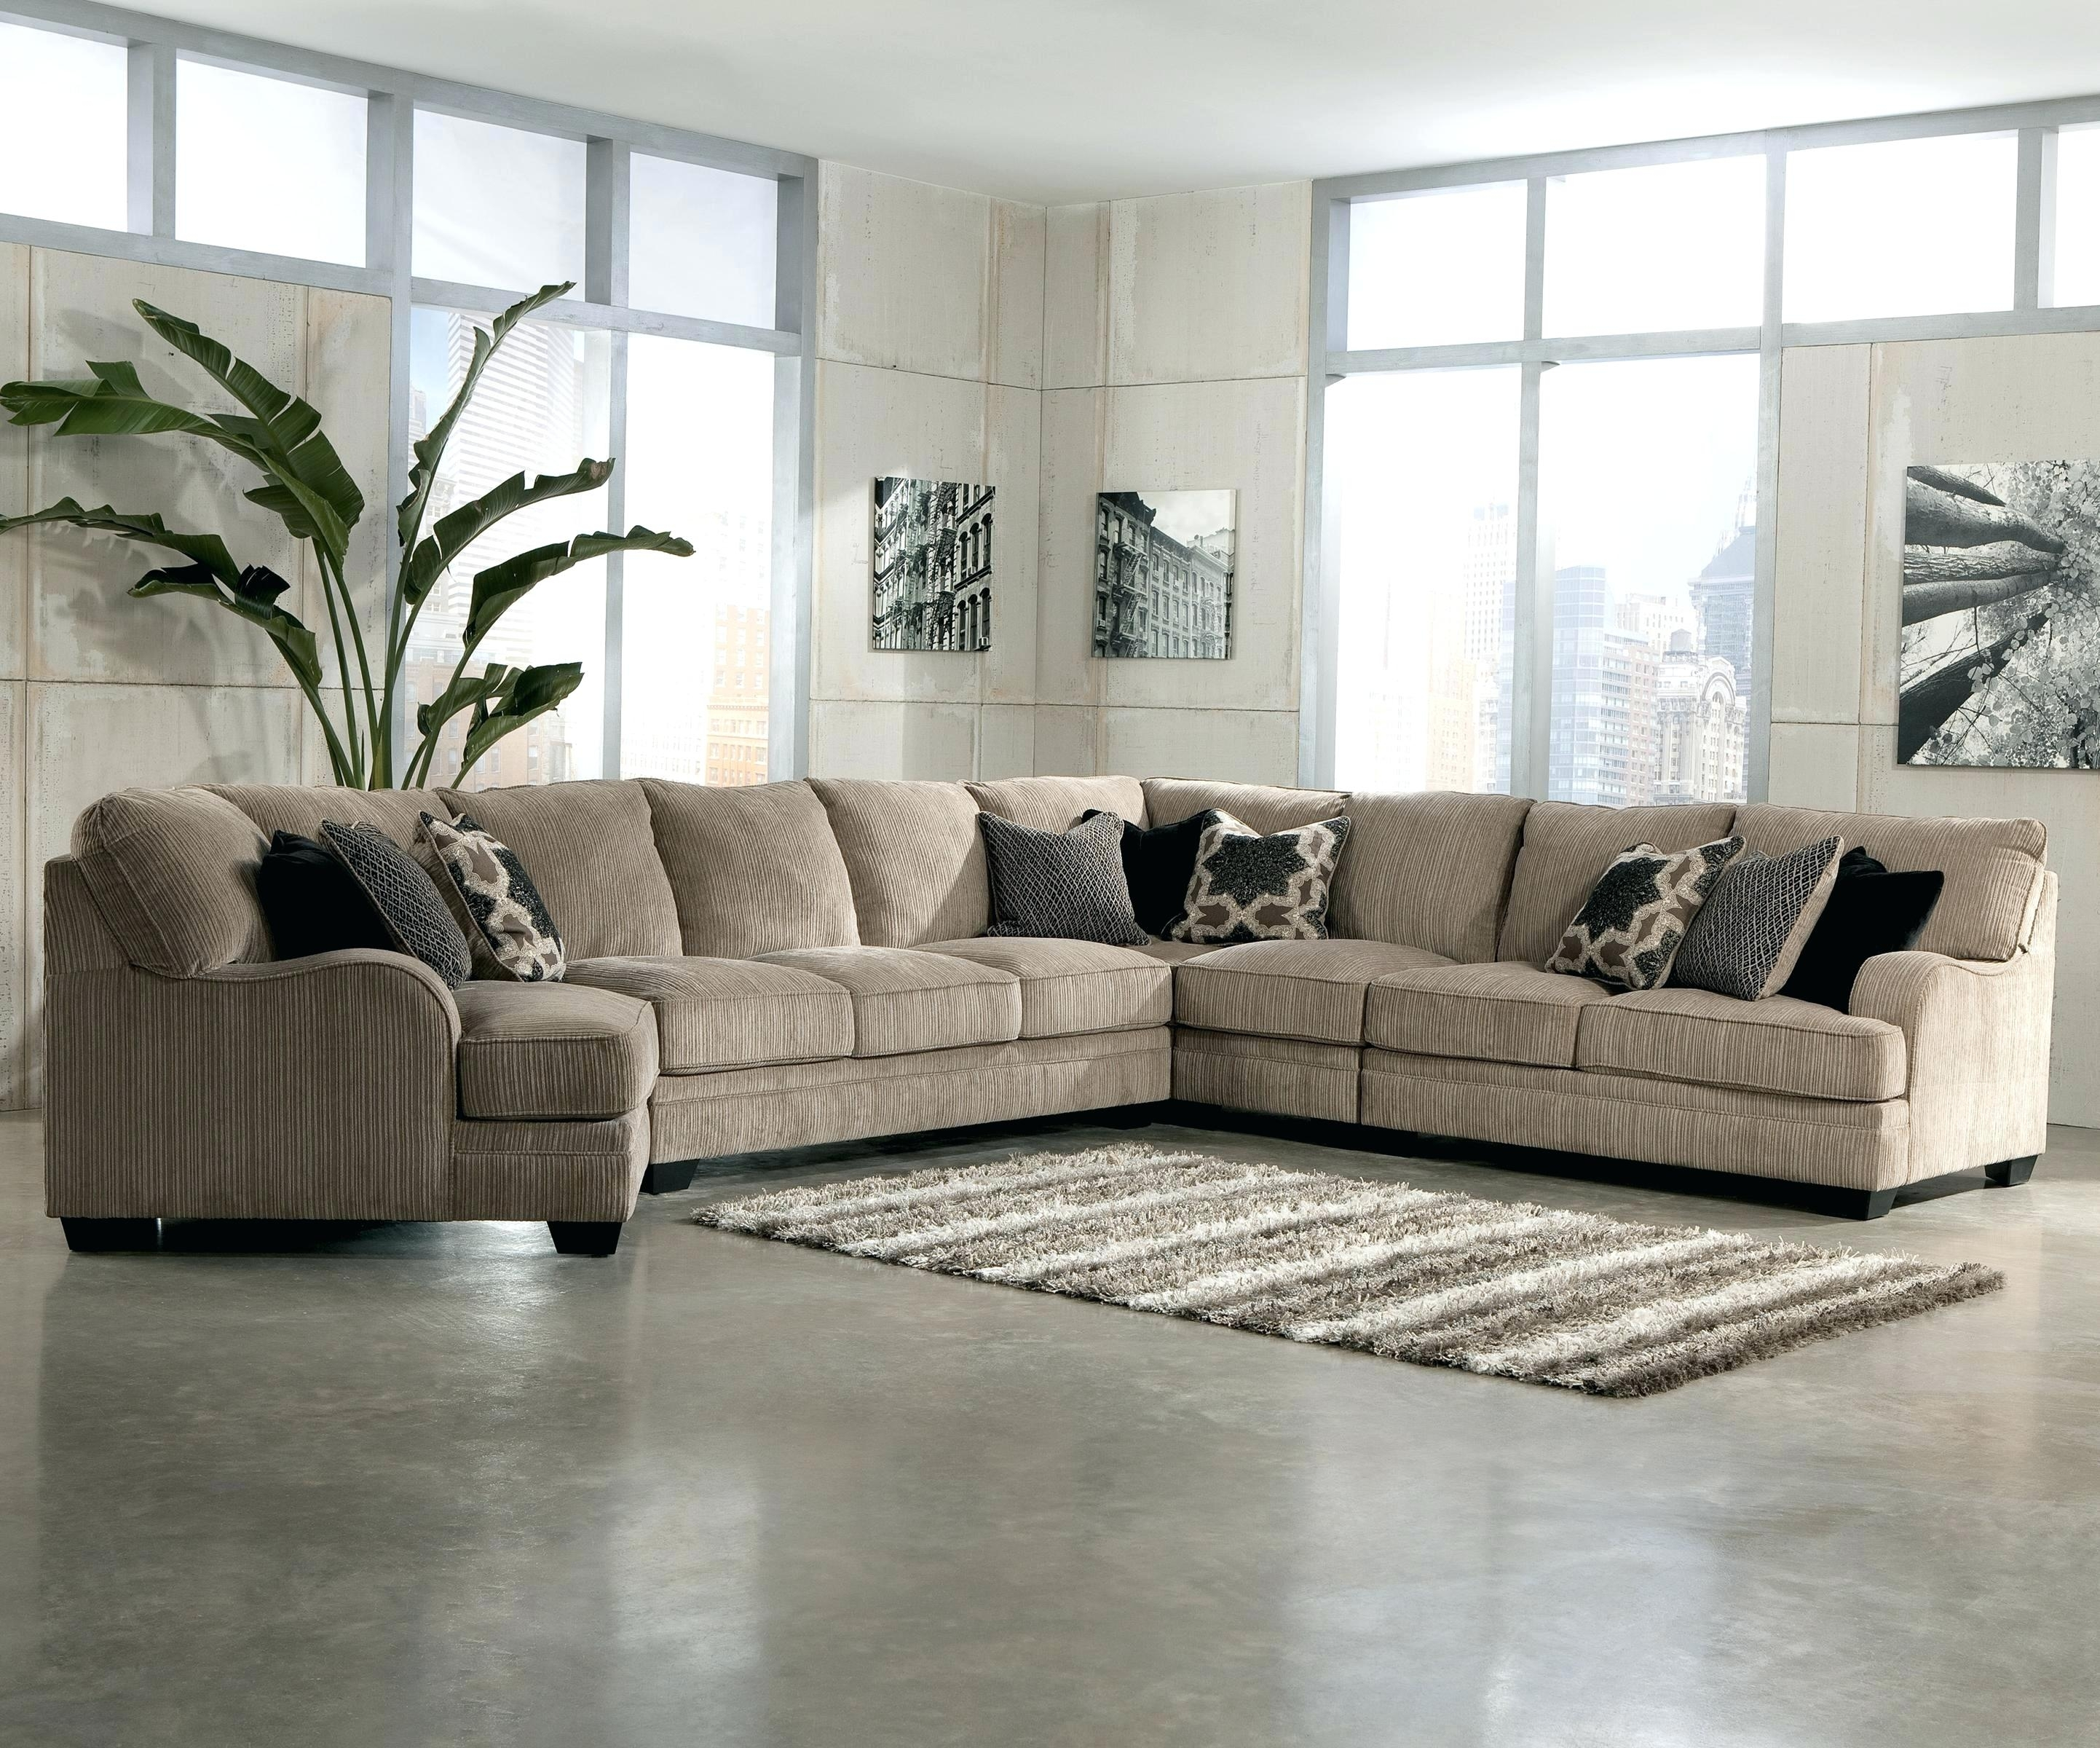 Fabric Sectionals Sofa Canada Couch On Sale Sectional Sofas With Inside Canada Sale Sectional Sofas (View 7 of 10)